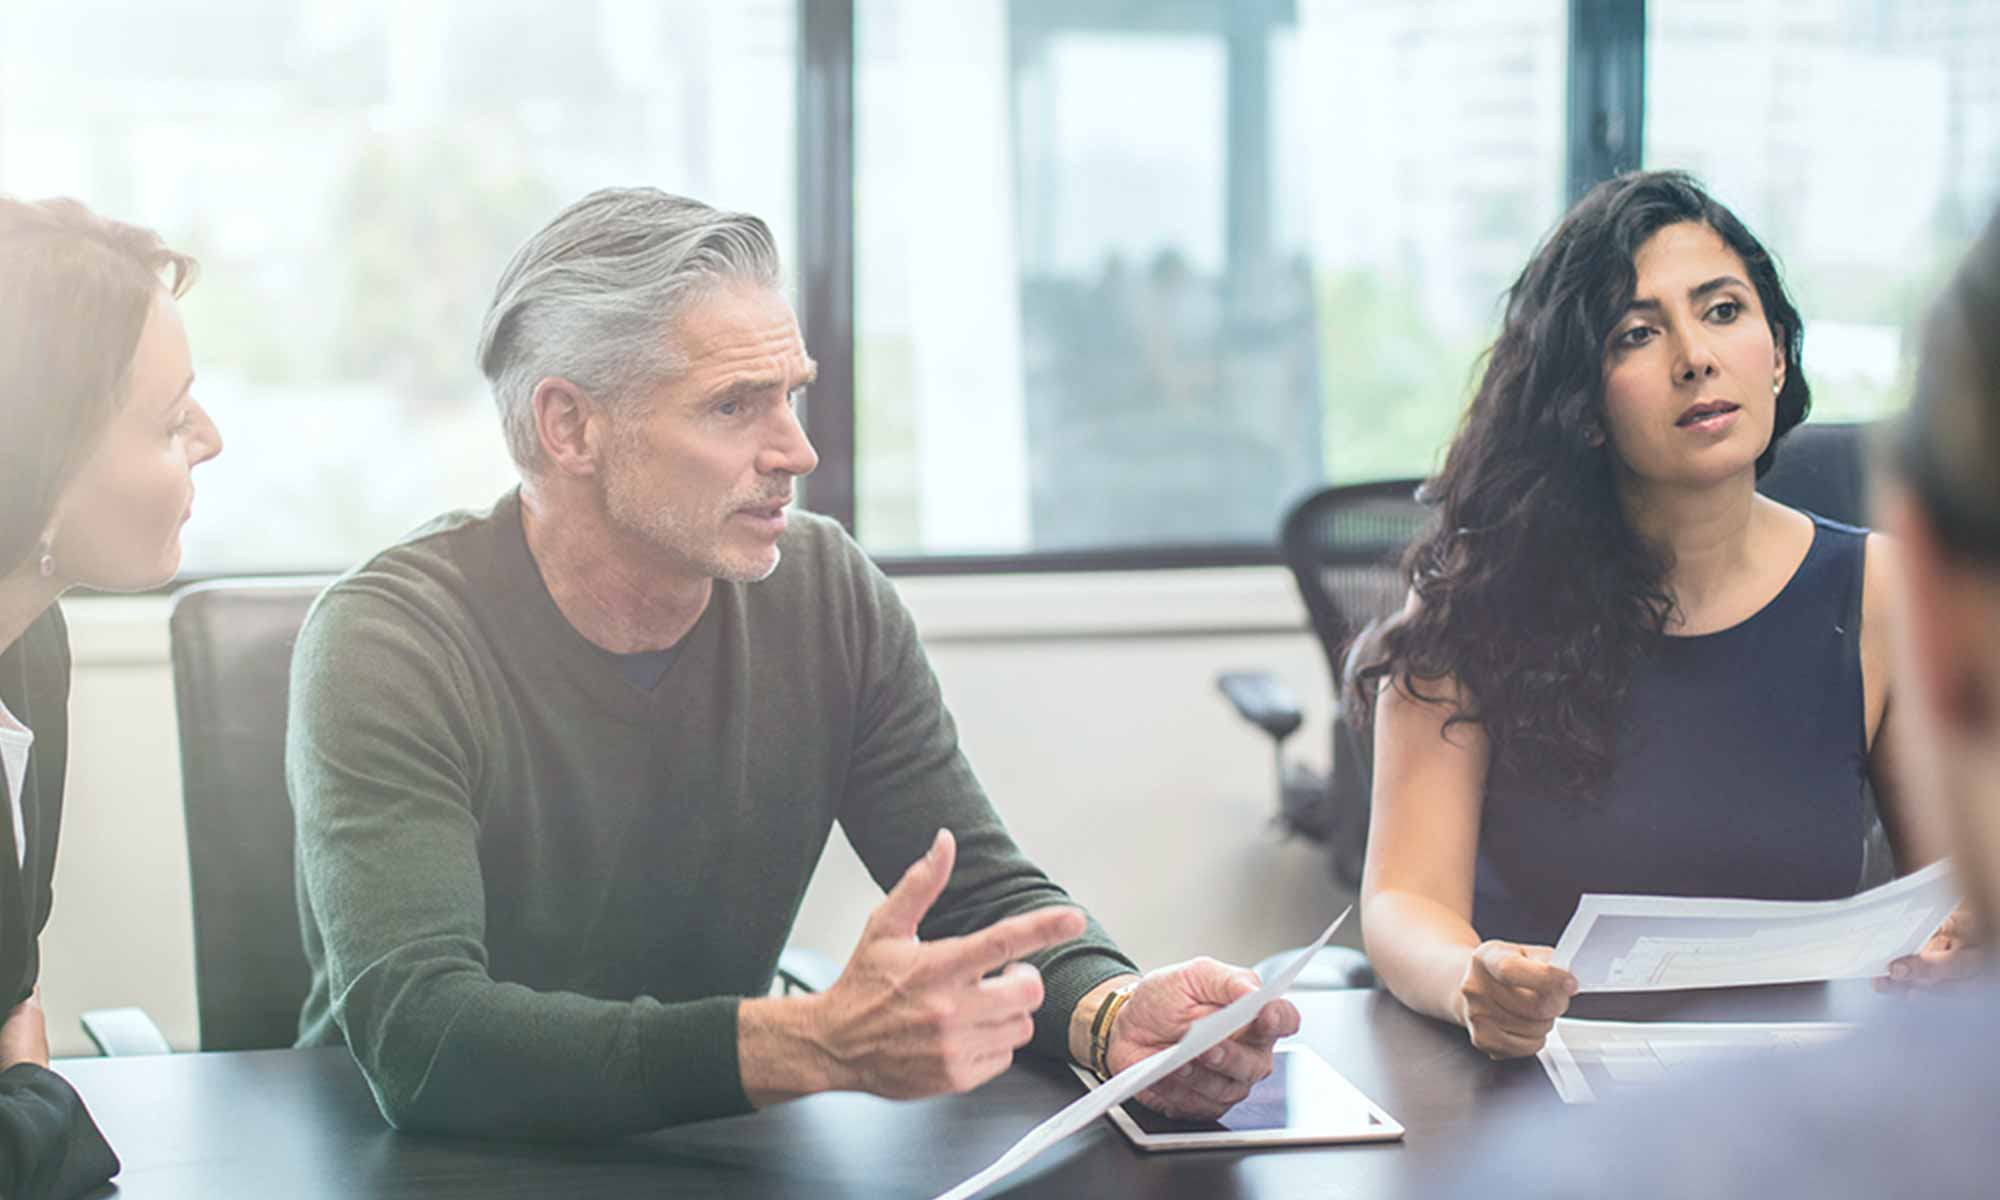 man and woman having serious discussion with colleagues